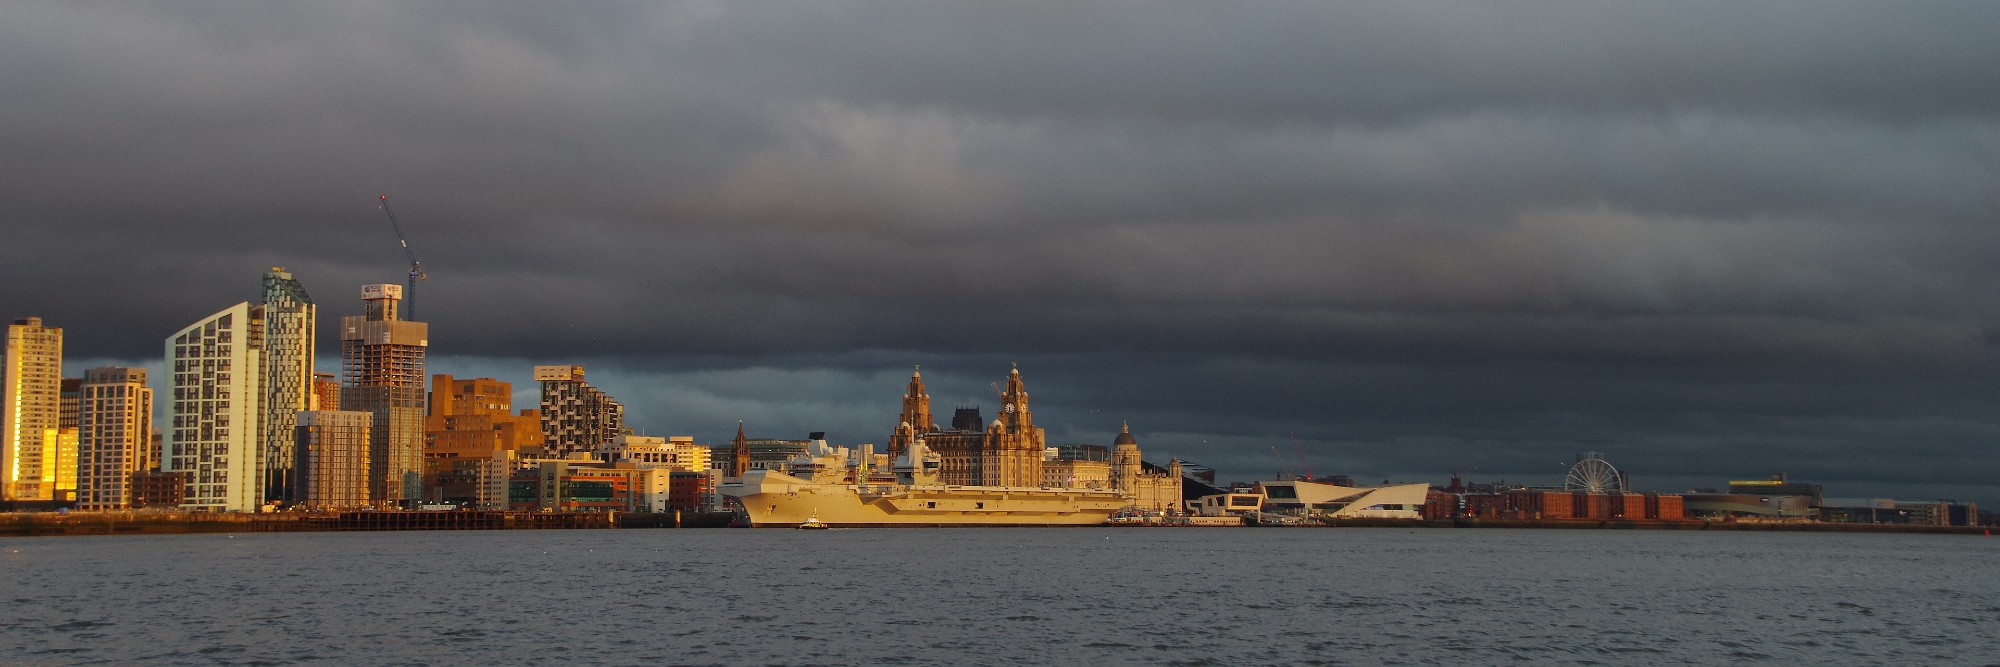 The Warship and the three graces